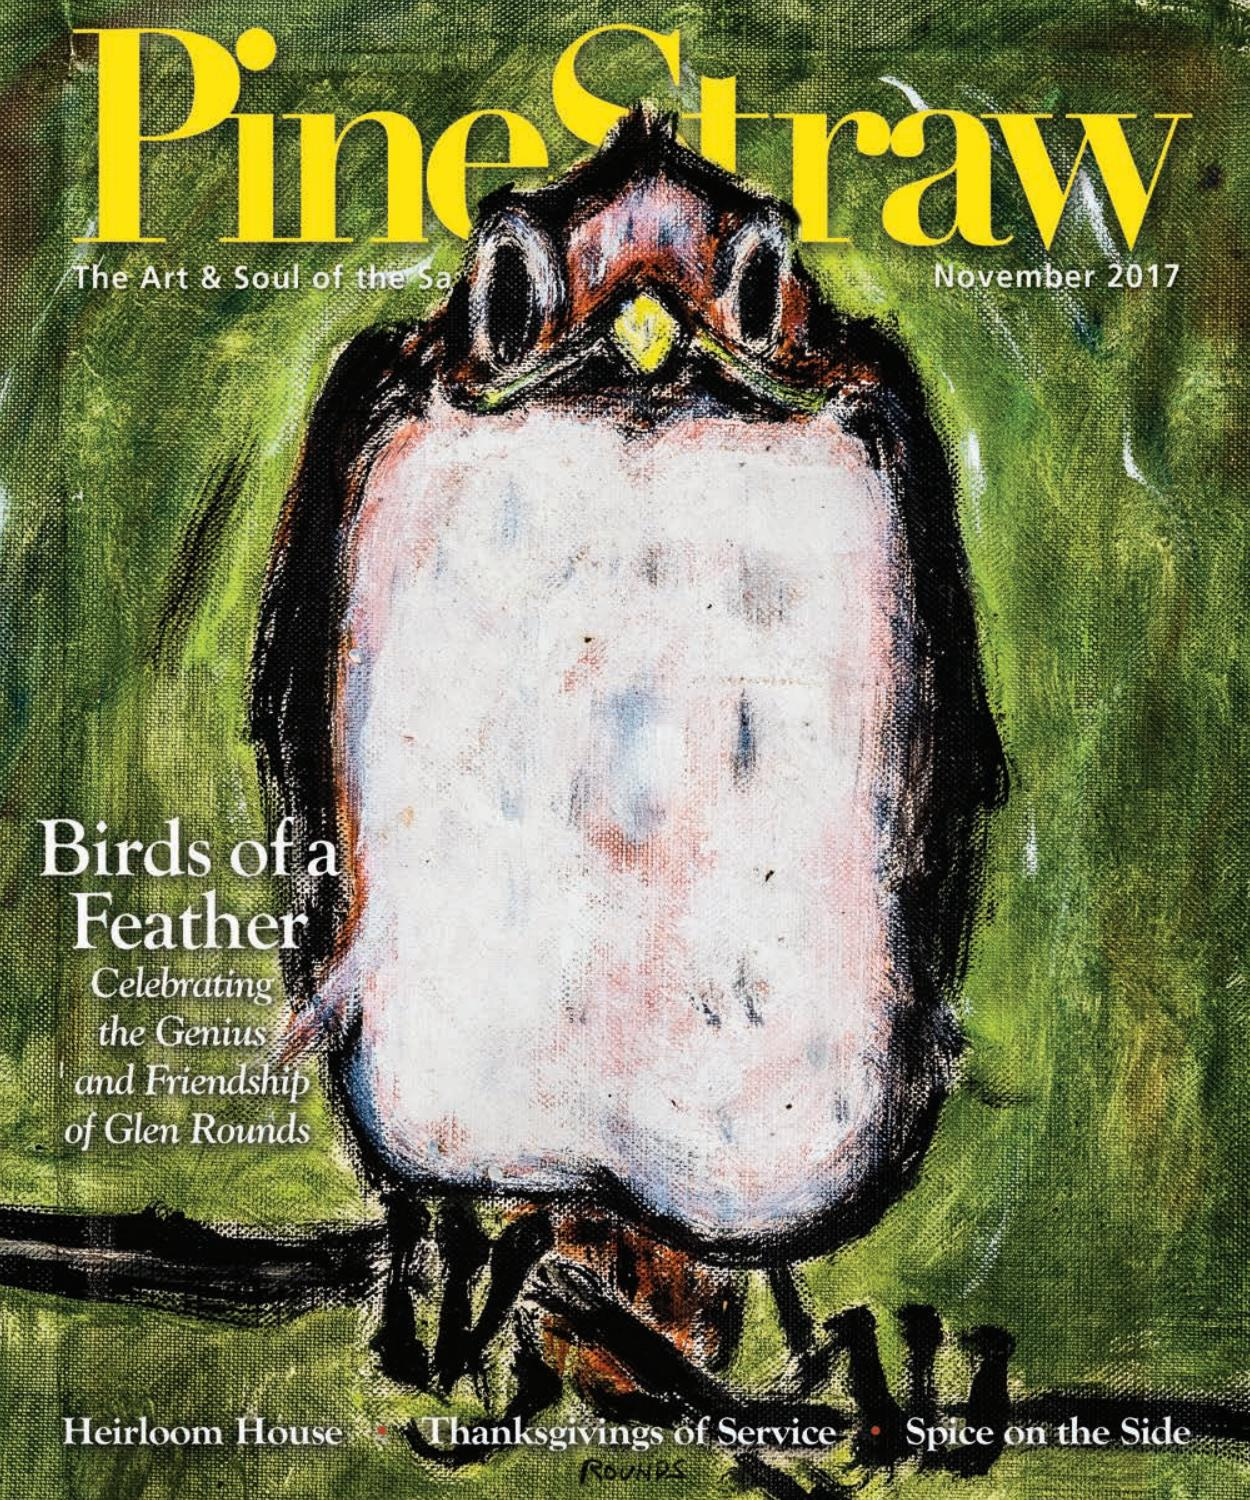 c0e255ce91e November PineStraw 2017 by PineStraw Magazine - issuu